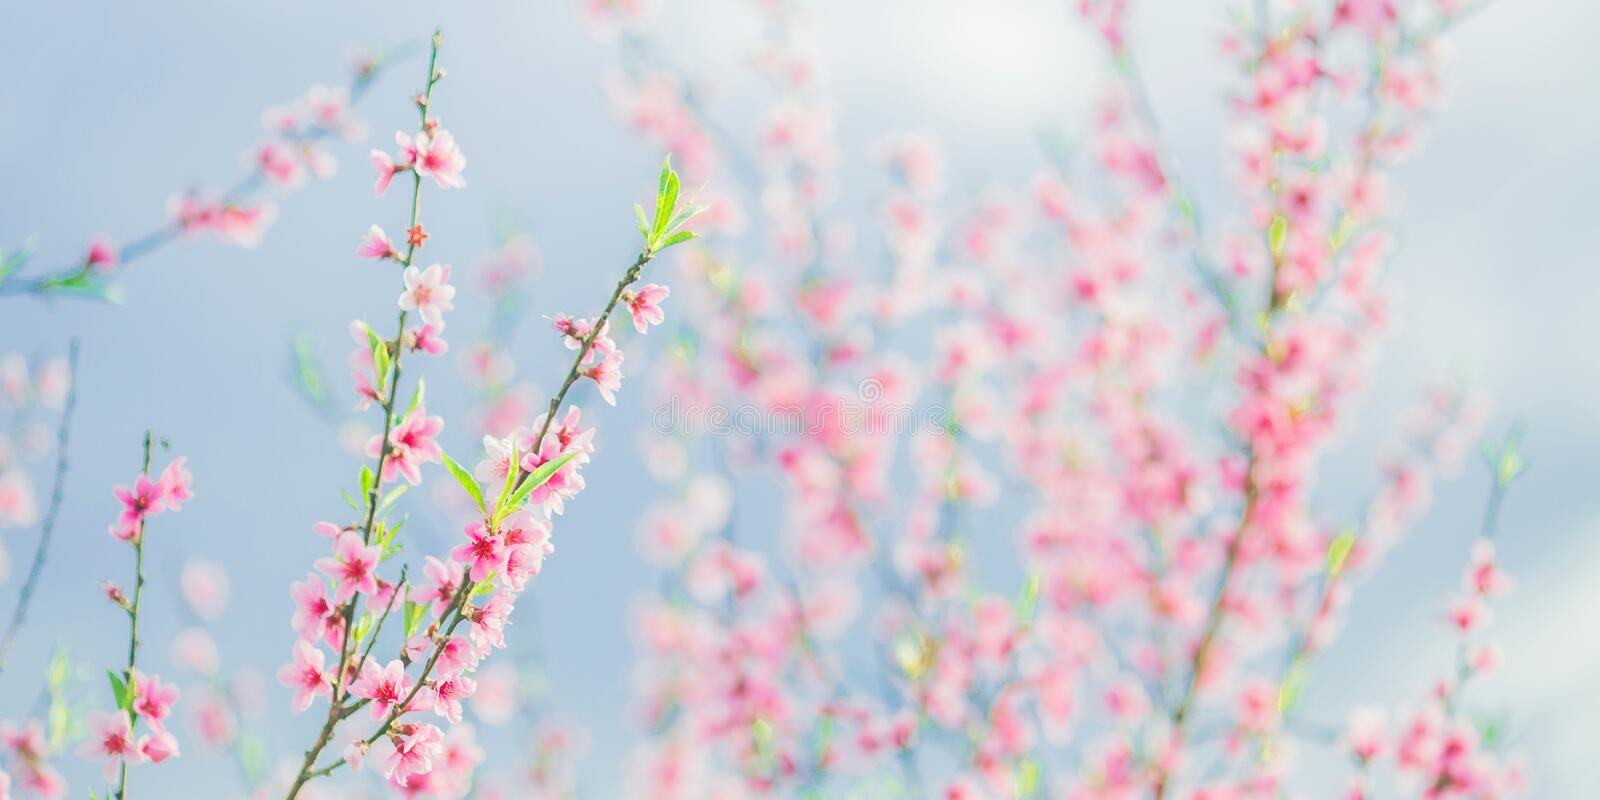 Apricot branch with pink flowers panorama. Spring blooming tree background. Nature backdrop. Blooming spring flower. Blossom stock photography